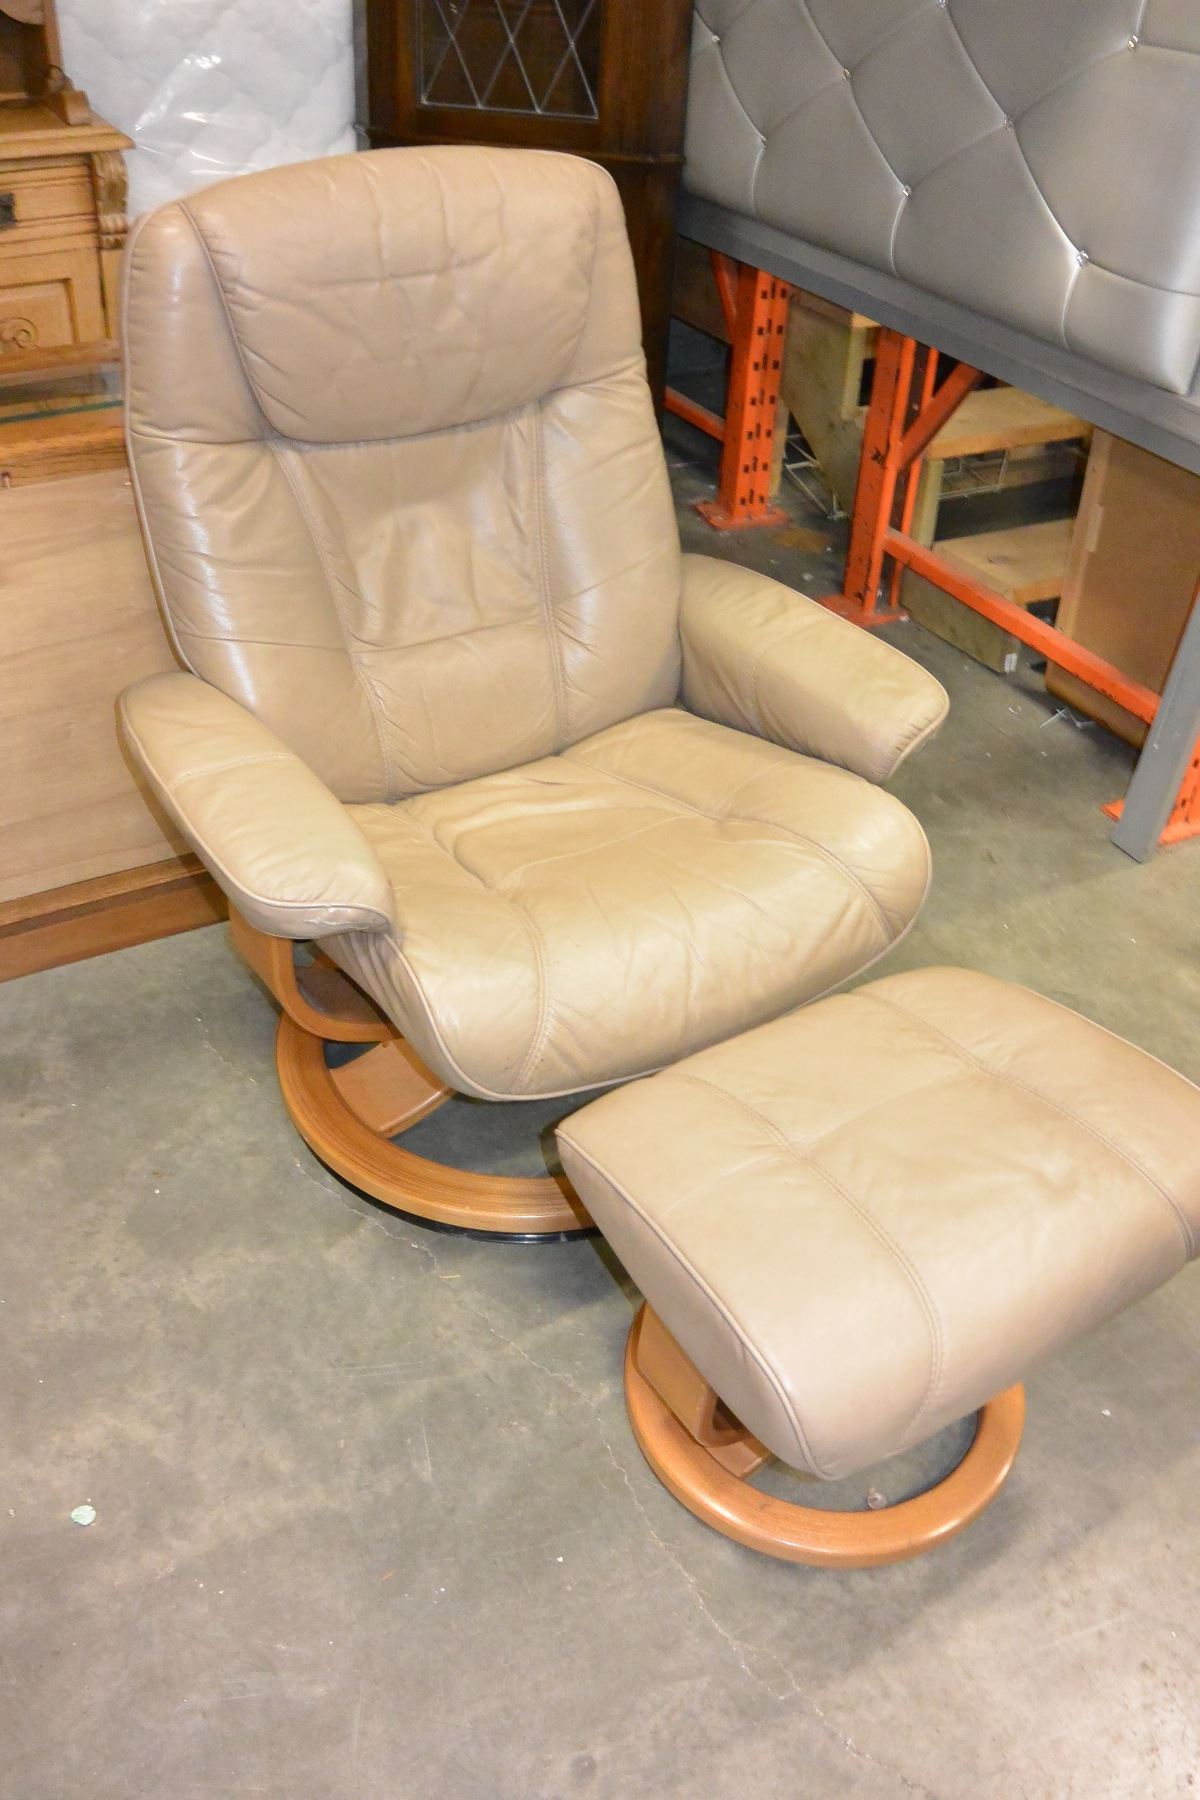 ... Image 3 : BEIGE LEATHER PALLISER RECLINER CHAIR AND OTTOMAN